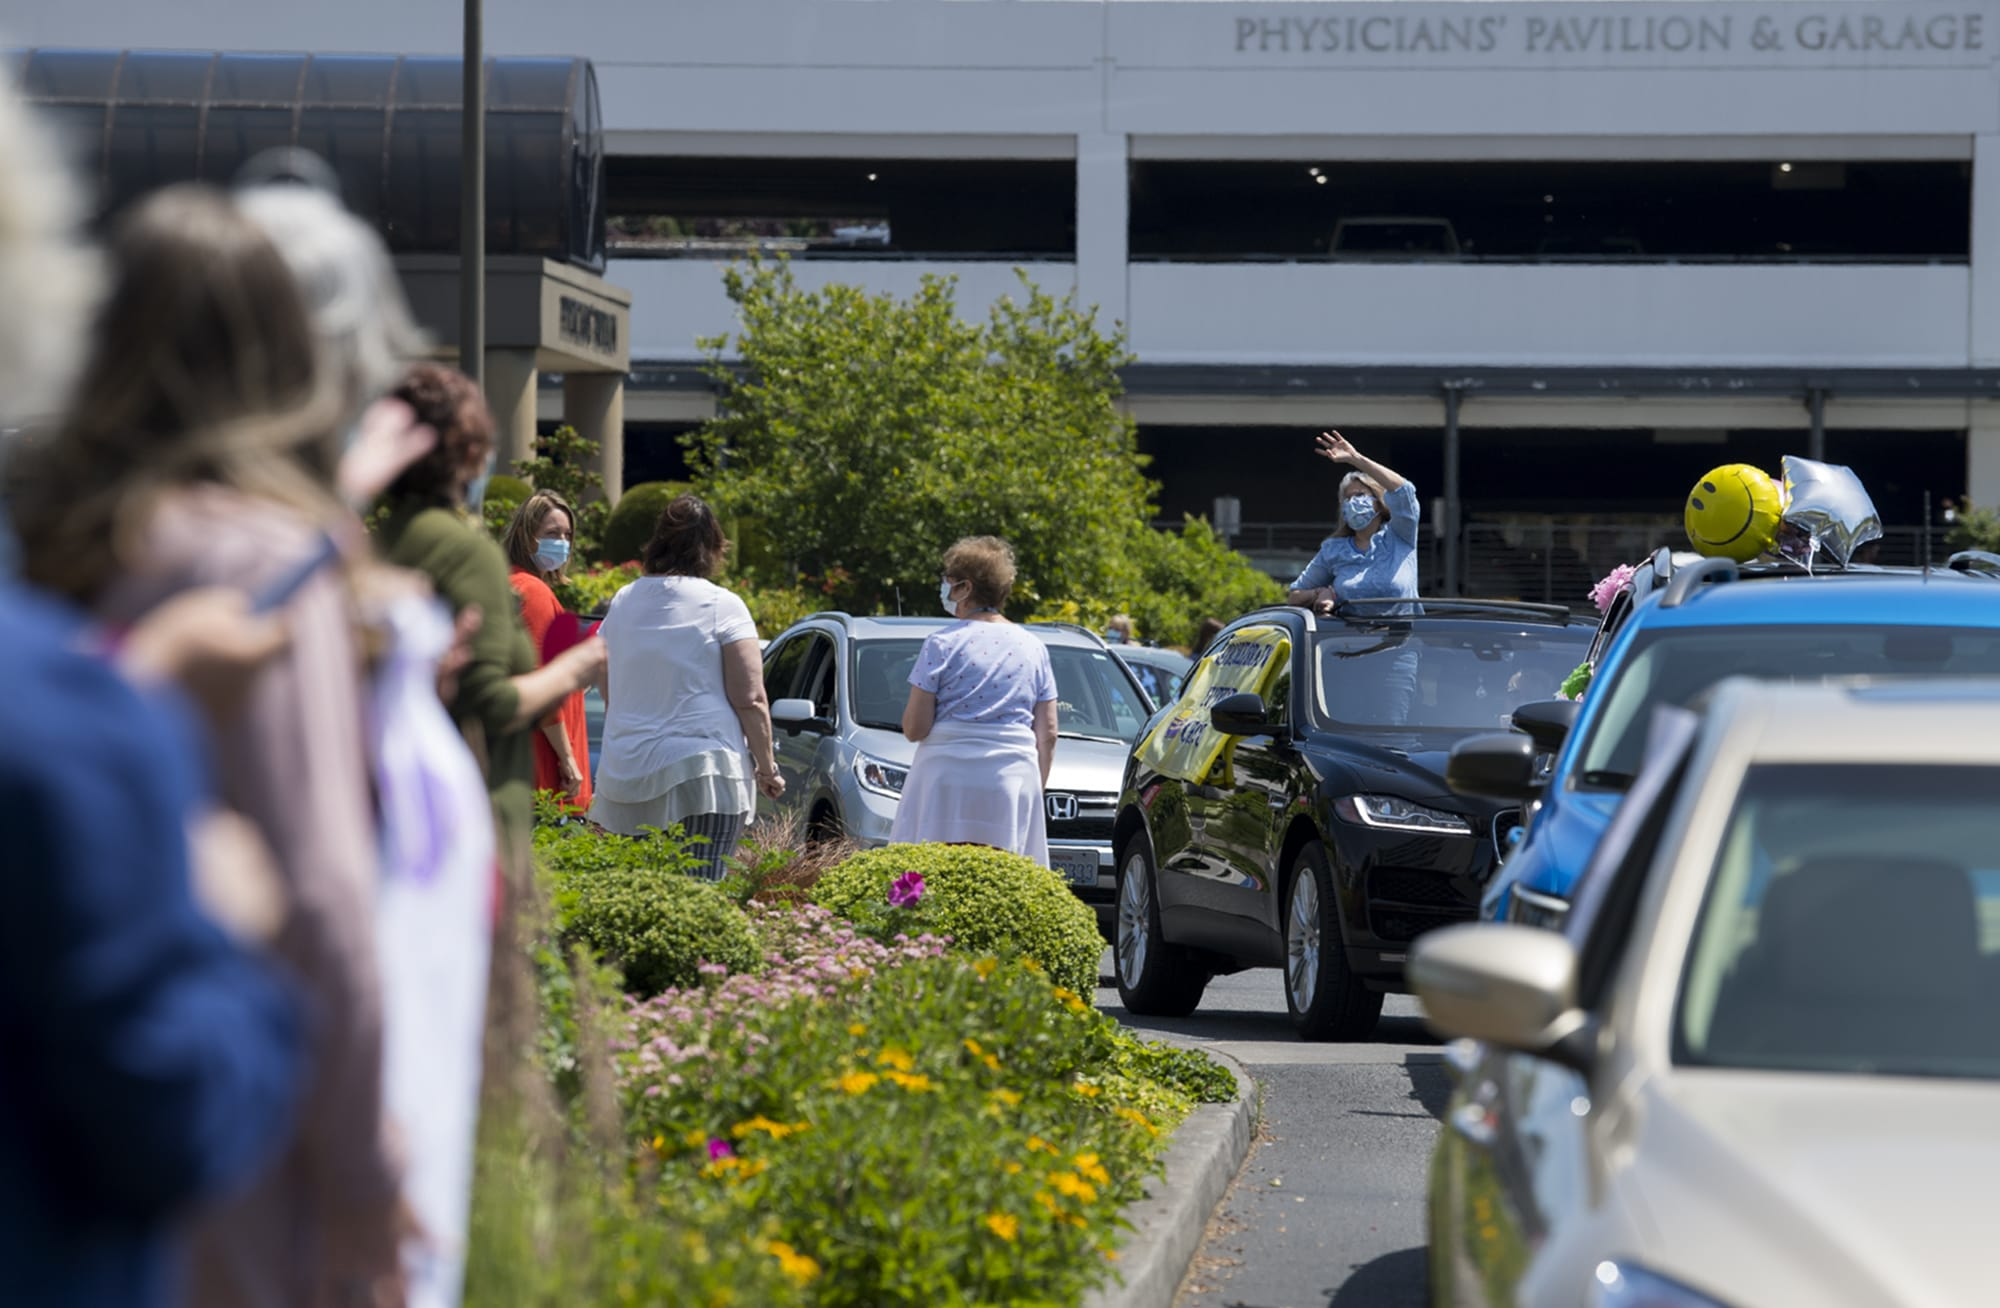 Vivian DiGioia of the stroke/brain support group, center in blue, greets hospital staff during a motorcade welcoming back volunteers at PeaceHealth Southwest Medical Center on Thursday afternoon, June 18, 2020. Around 40 volunteers, who have been furloughed since March 18, came out for the warm welcome back. (Amanda Cowan/The Columbian)